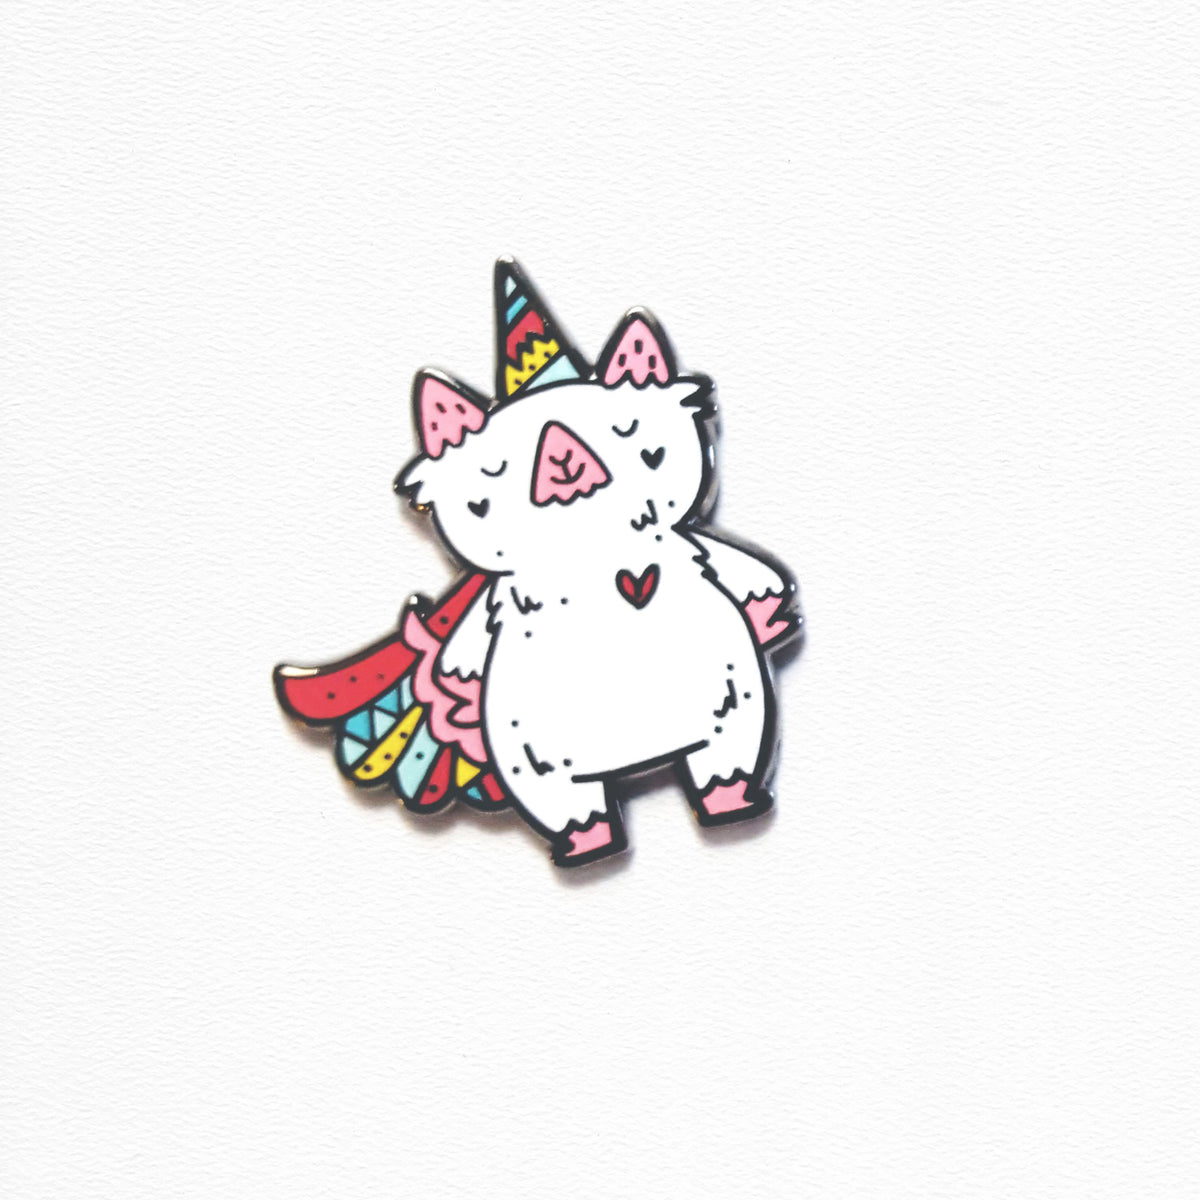 Captain Mabel ~ Superhero unicorn part cat enamel pin by Vancouver designer, My Cat Is People